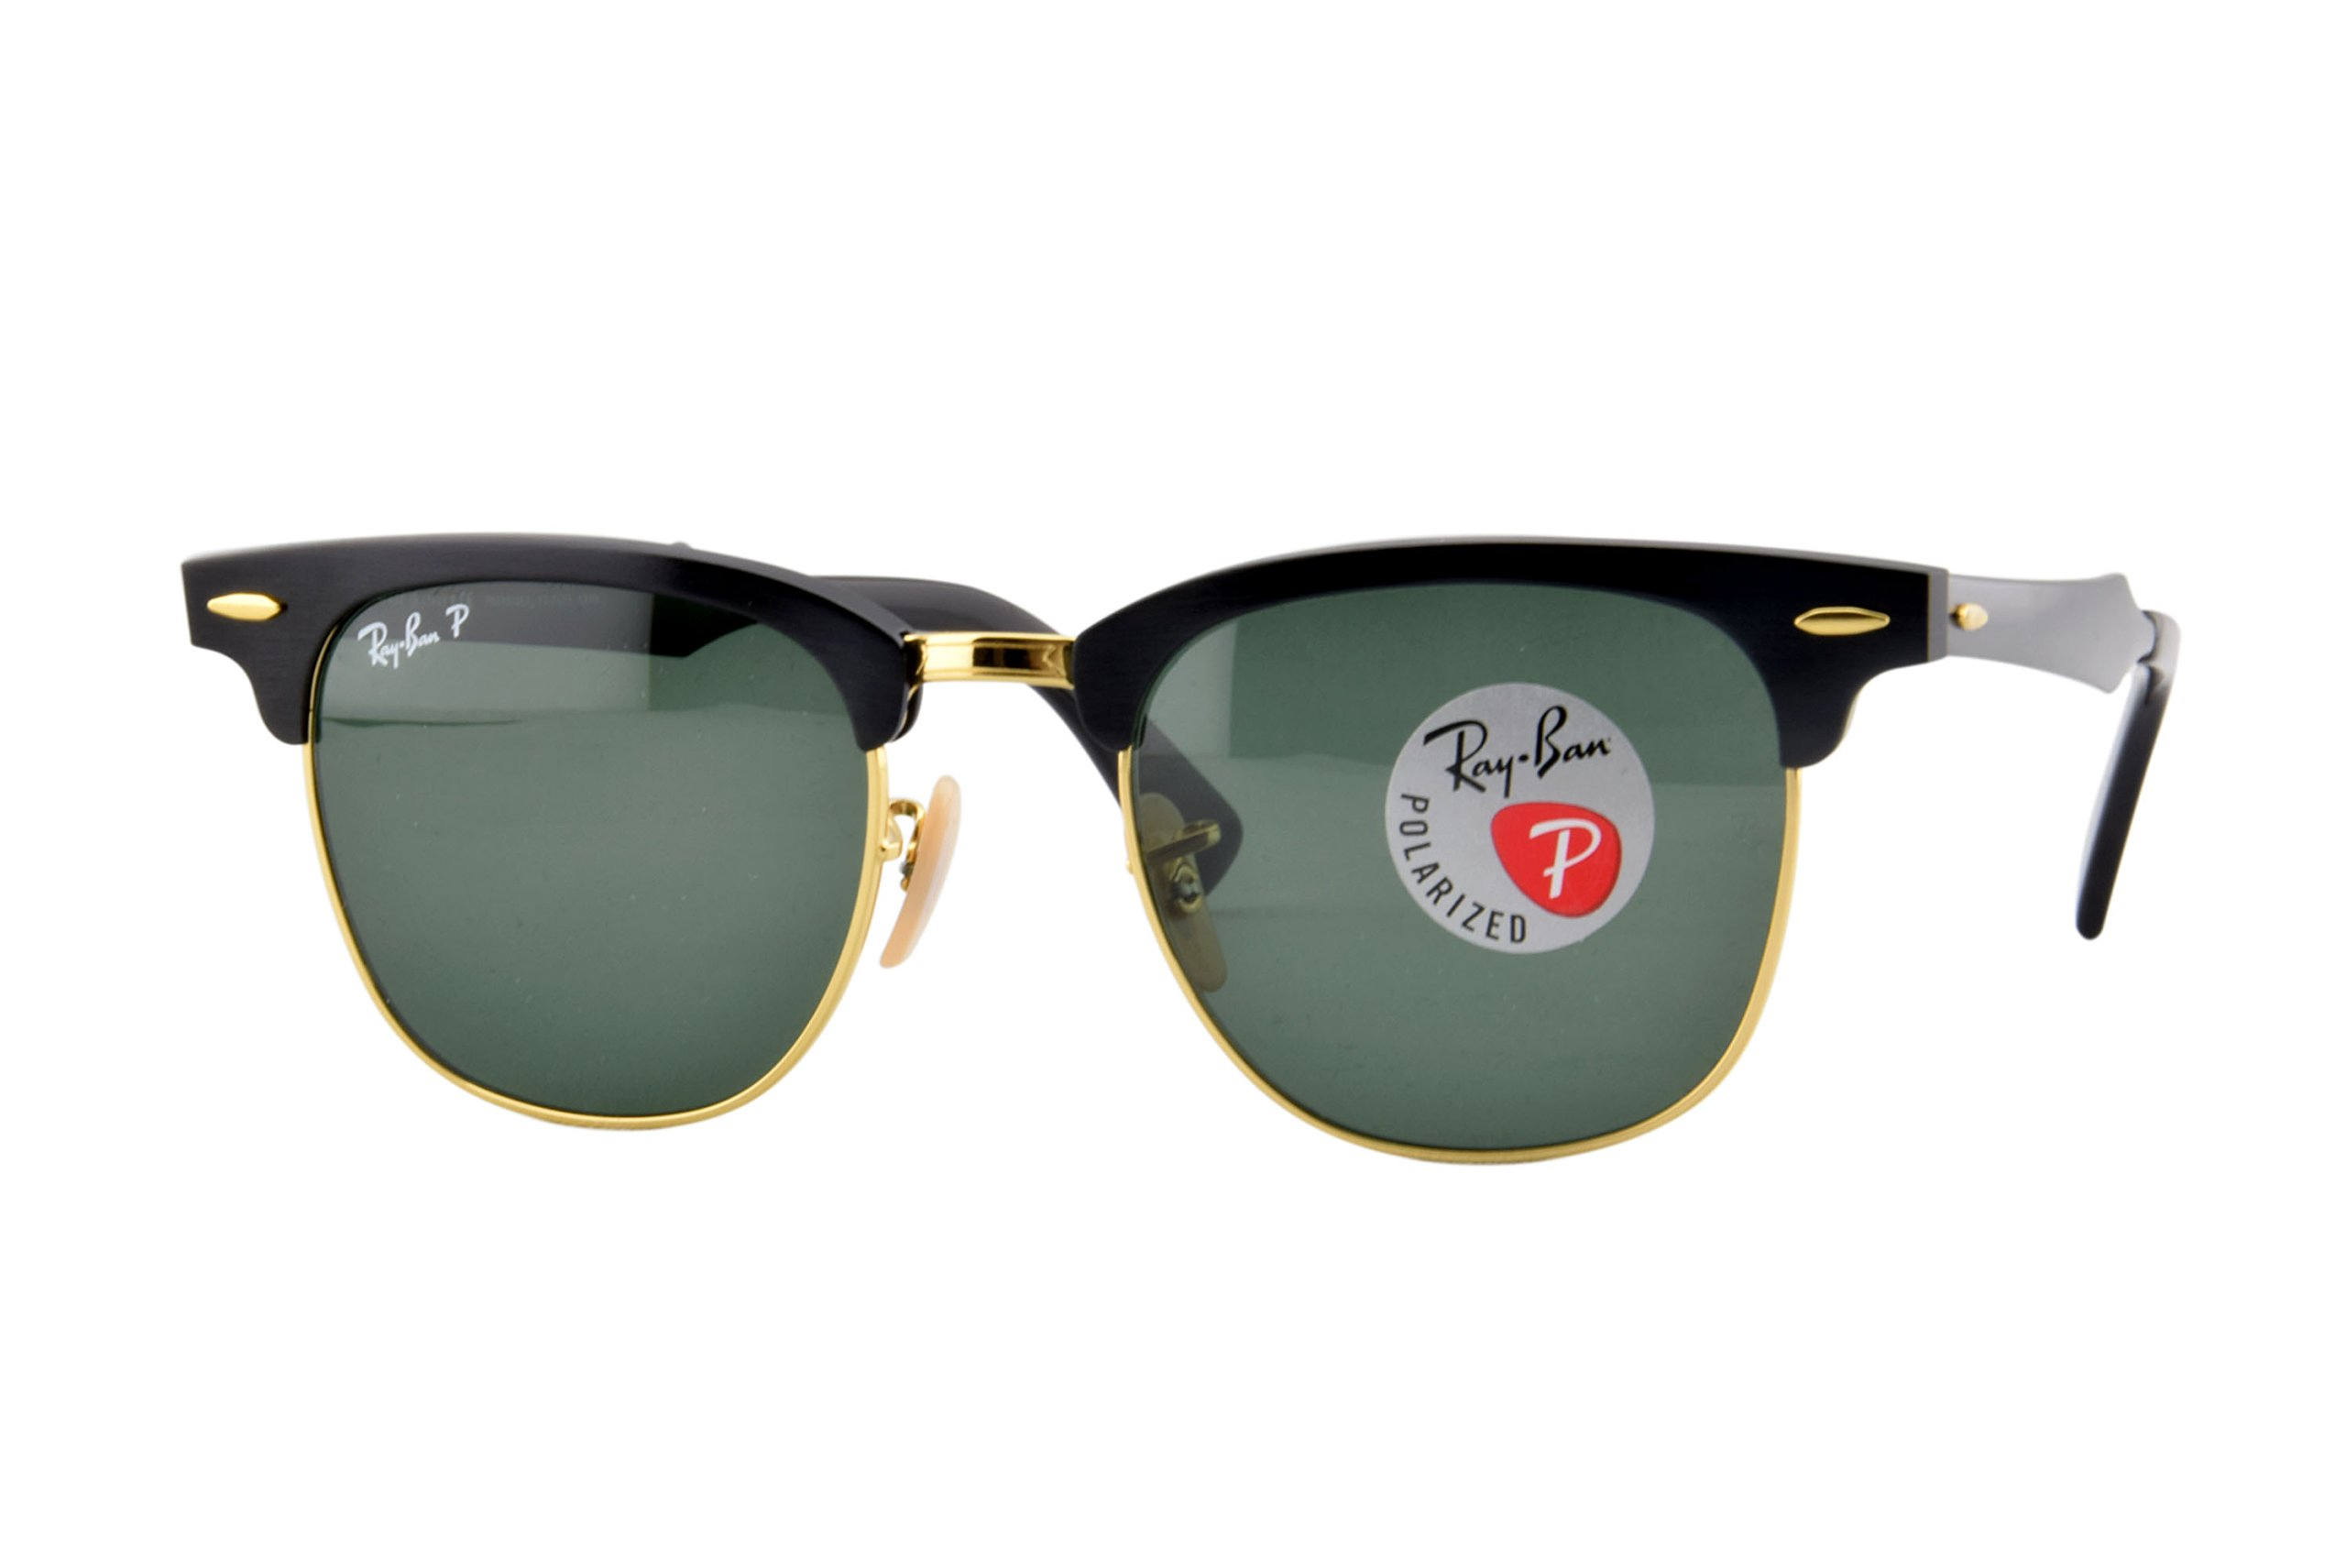 Ray-Ban RB3507 136/N5 Clubmaster Aluminum Polarized Sunglasses, Black Arista/Polar Green, 49mm by Ray-Ban